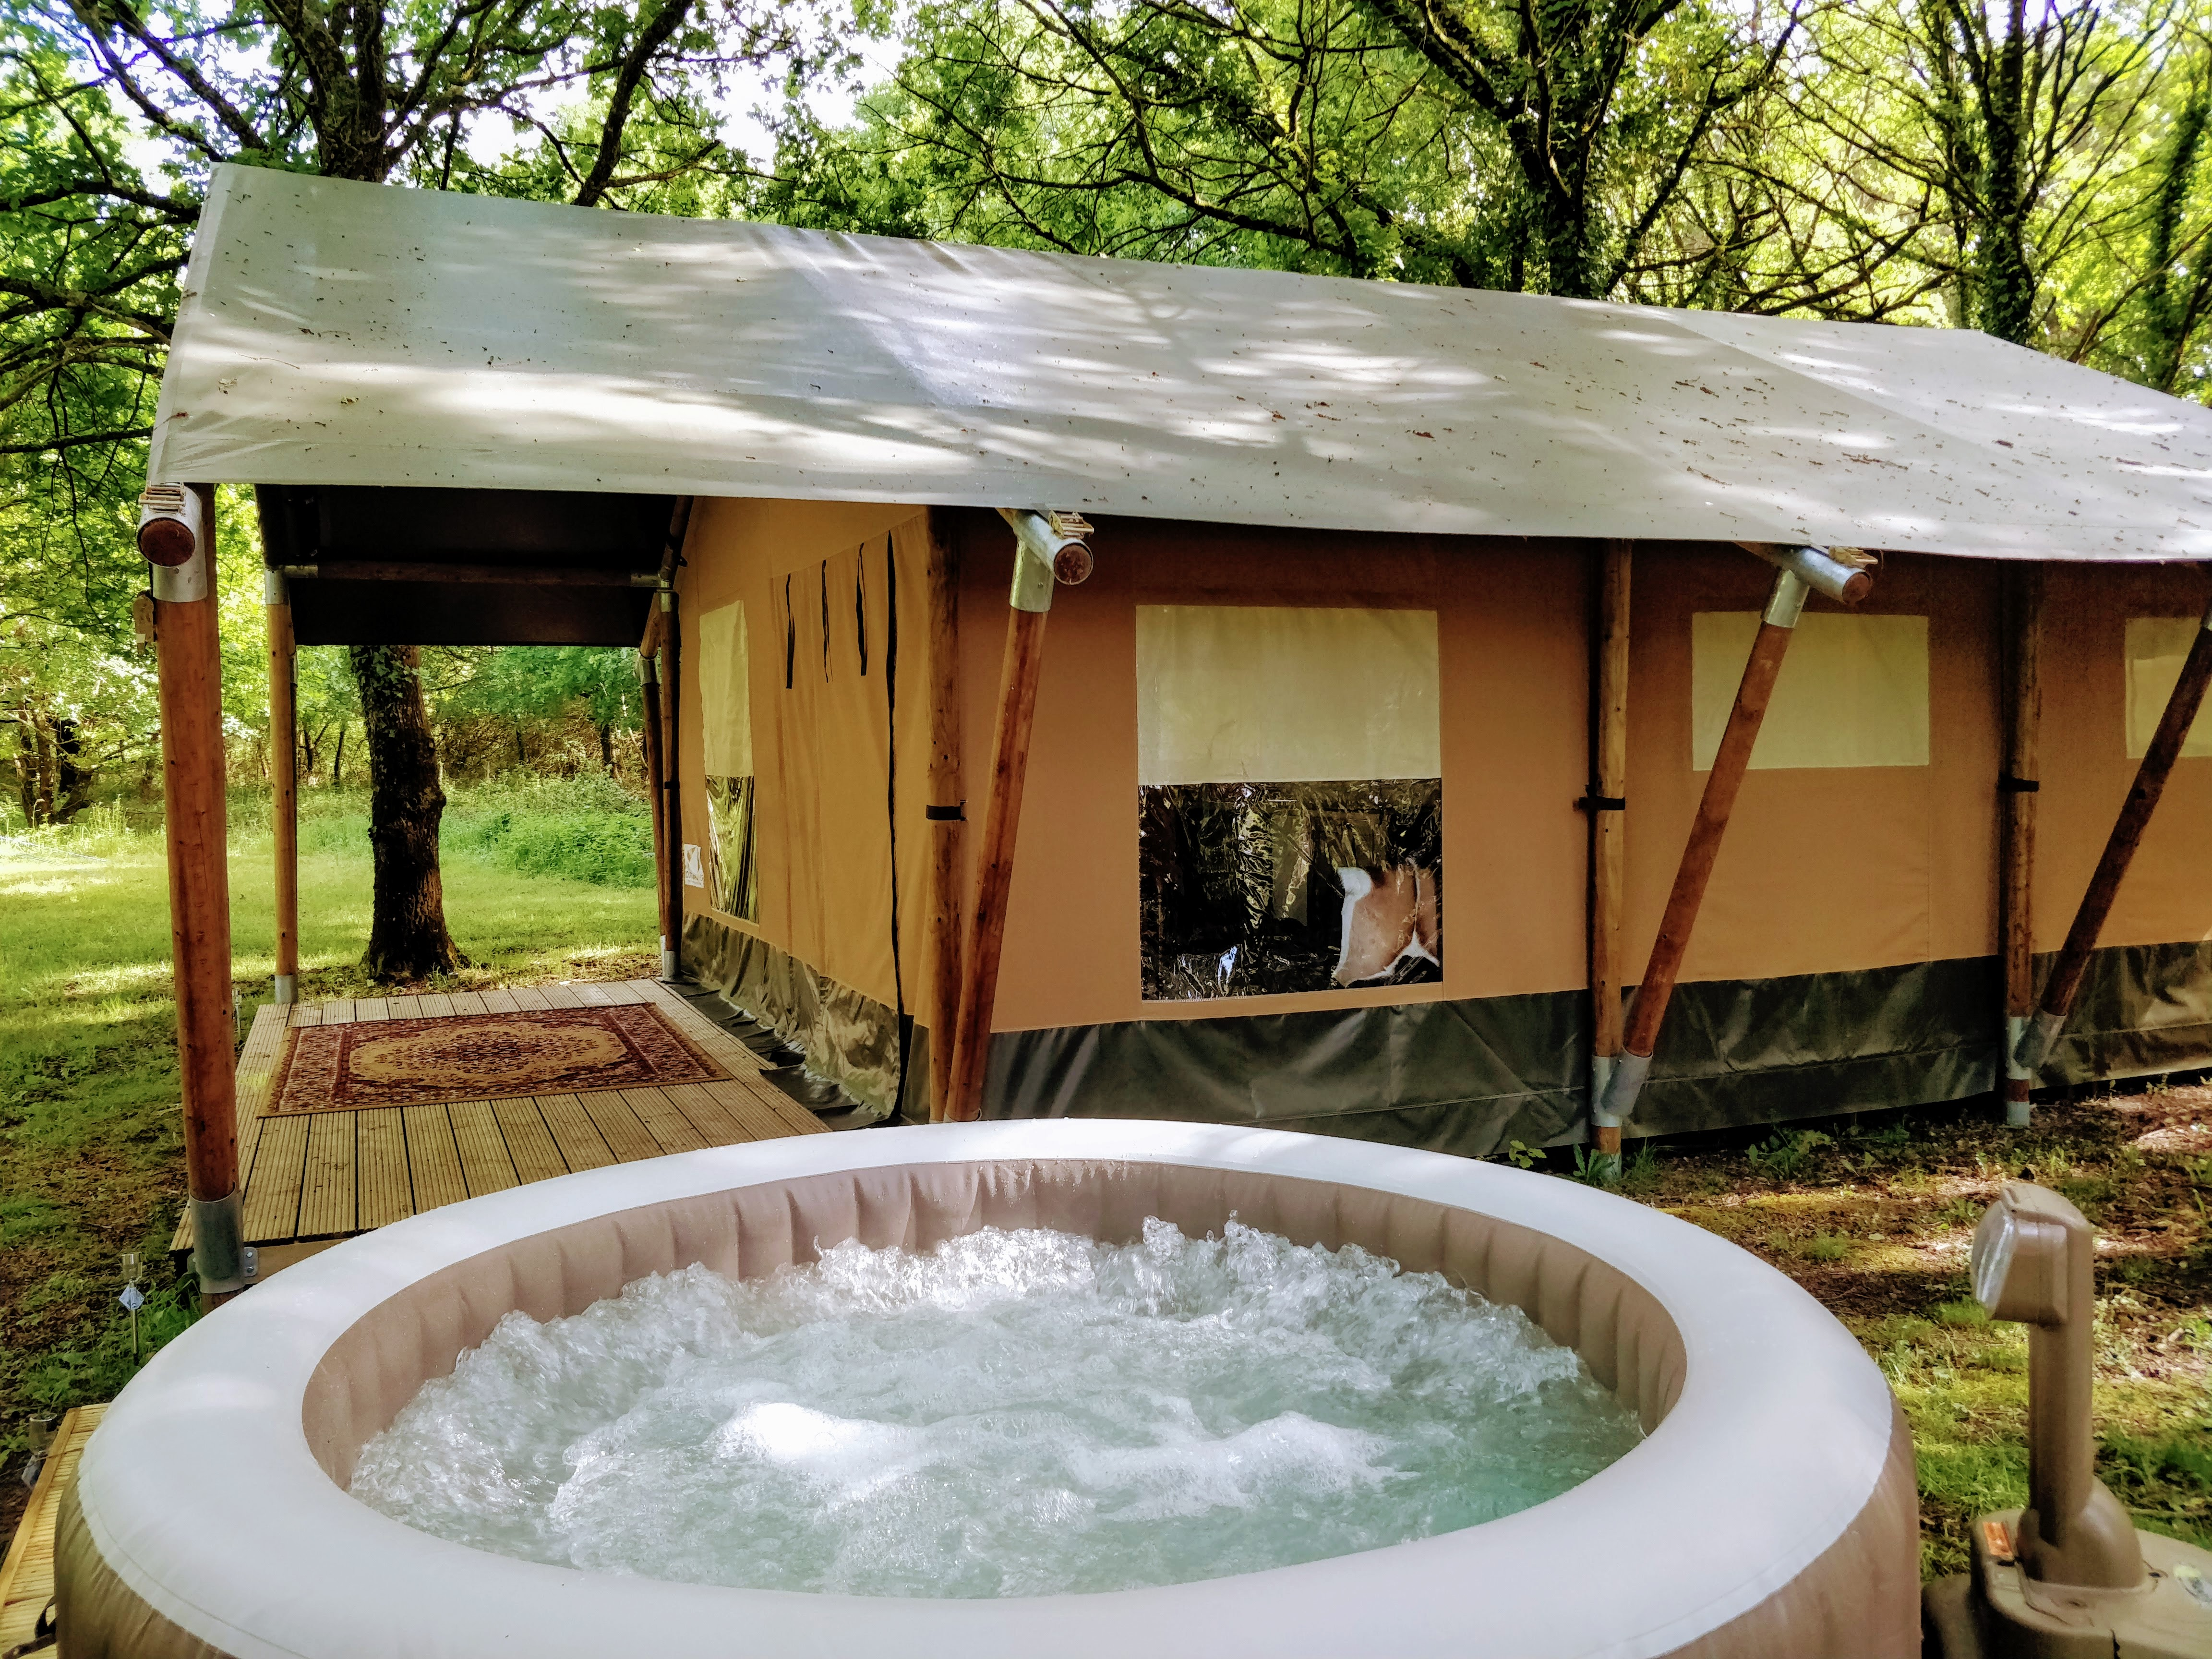 Jacuzzi Pool Opening Kit The View From The Safari Tent And Hot Tub Spa Camping